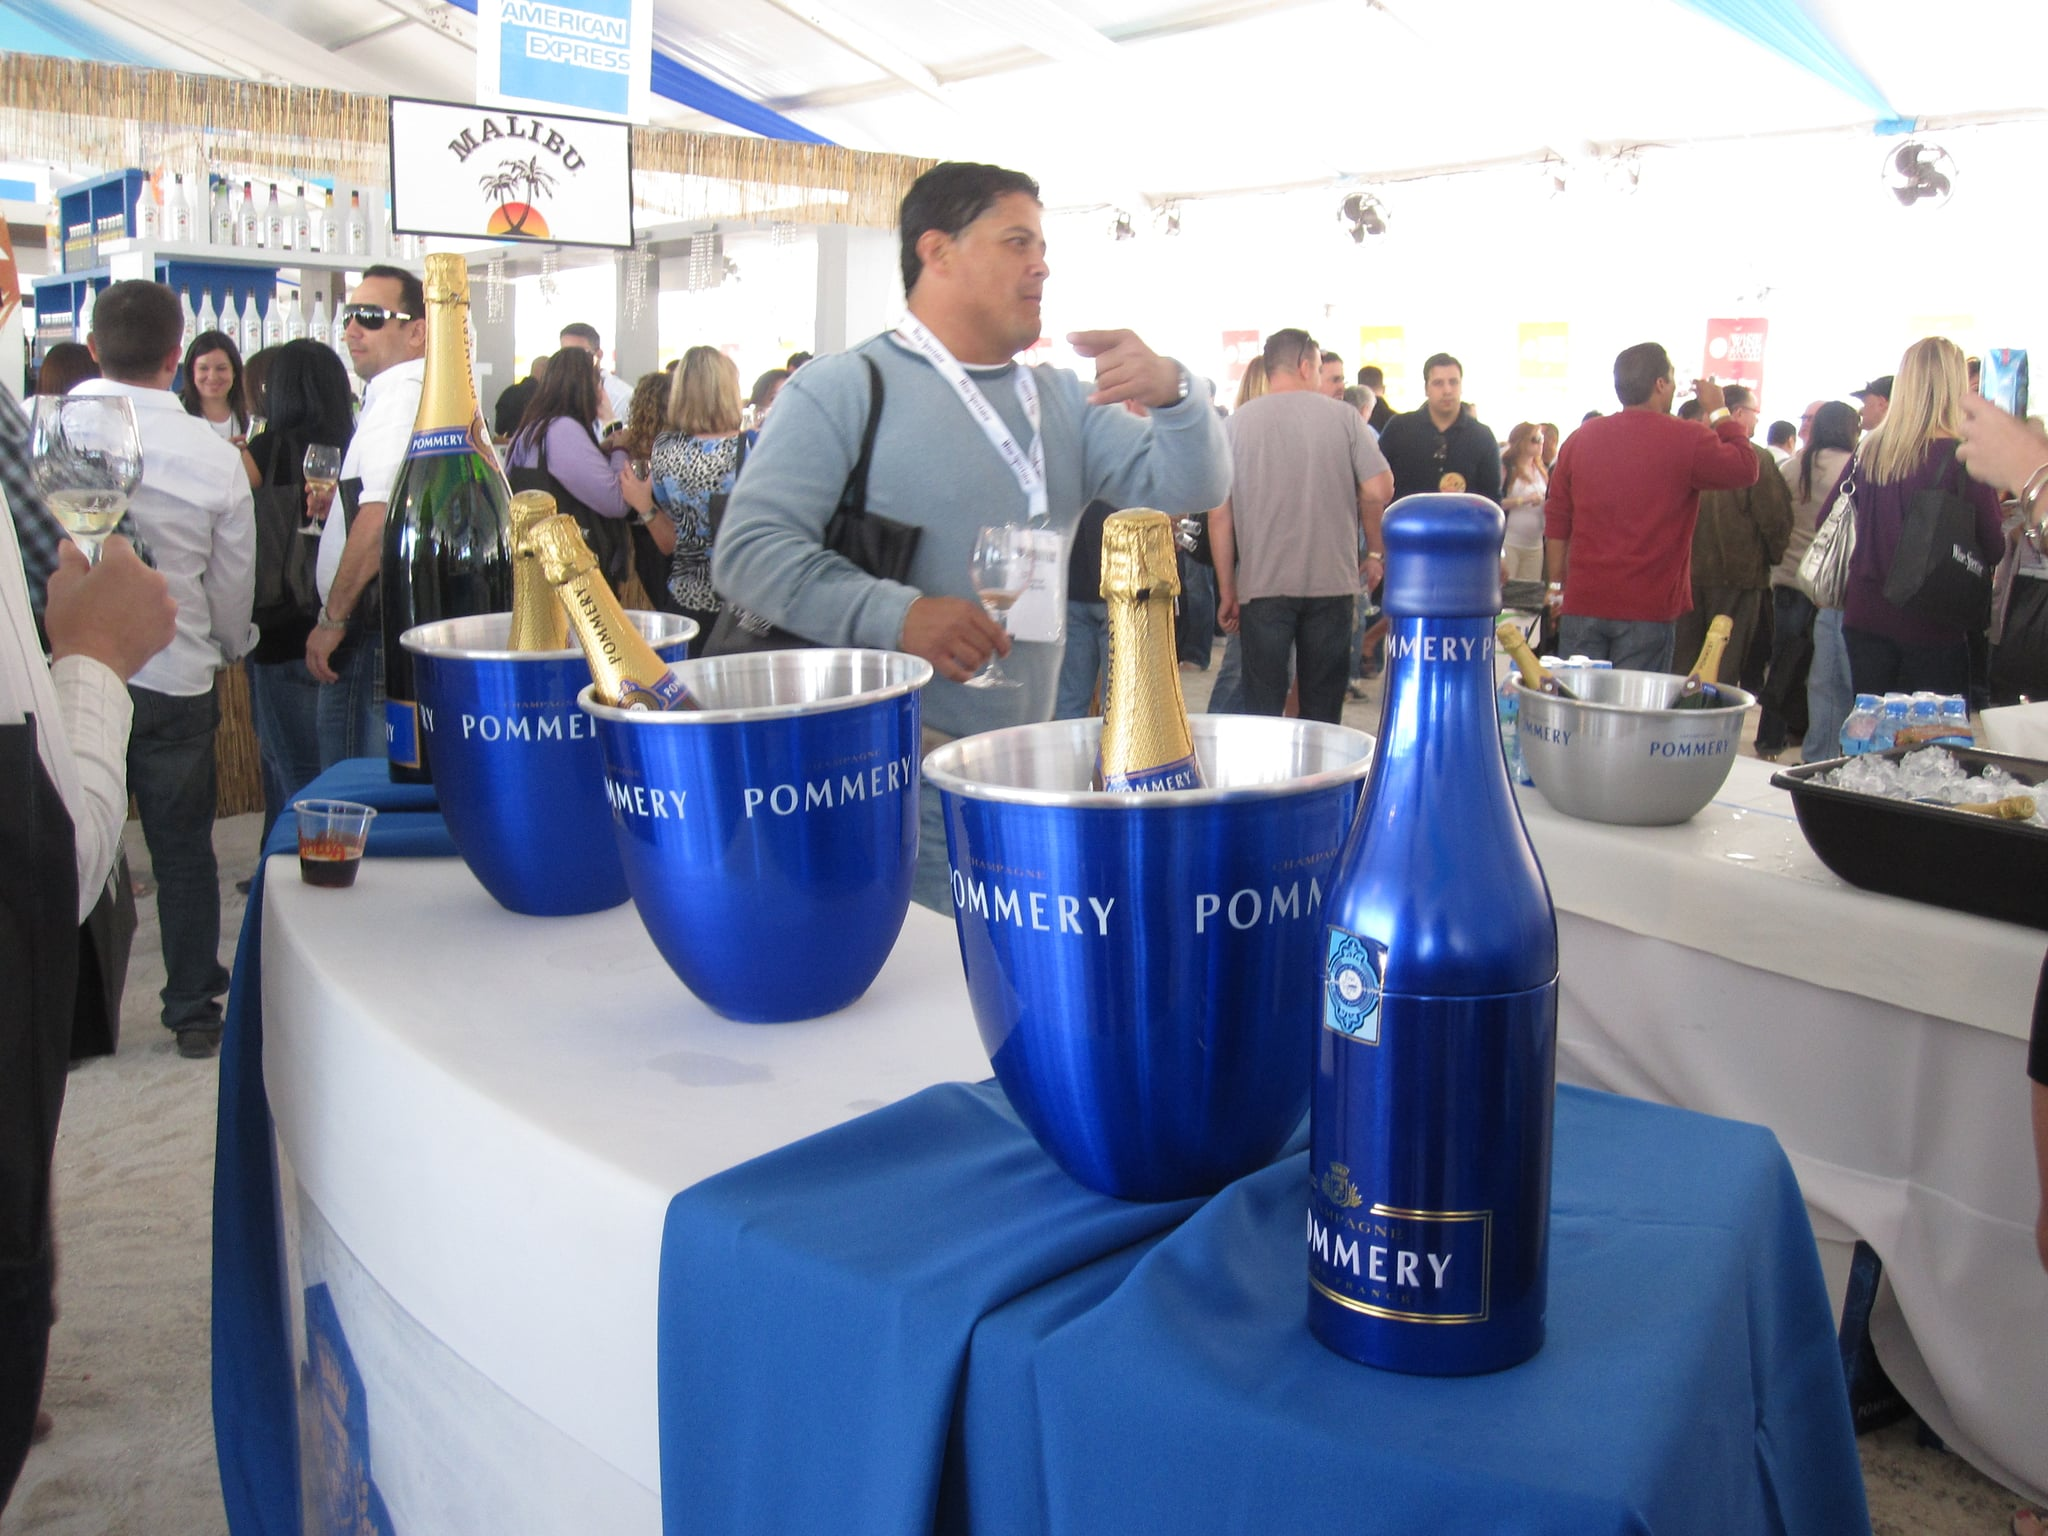 You can bet I hung out at this Pommery station for awhile.